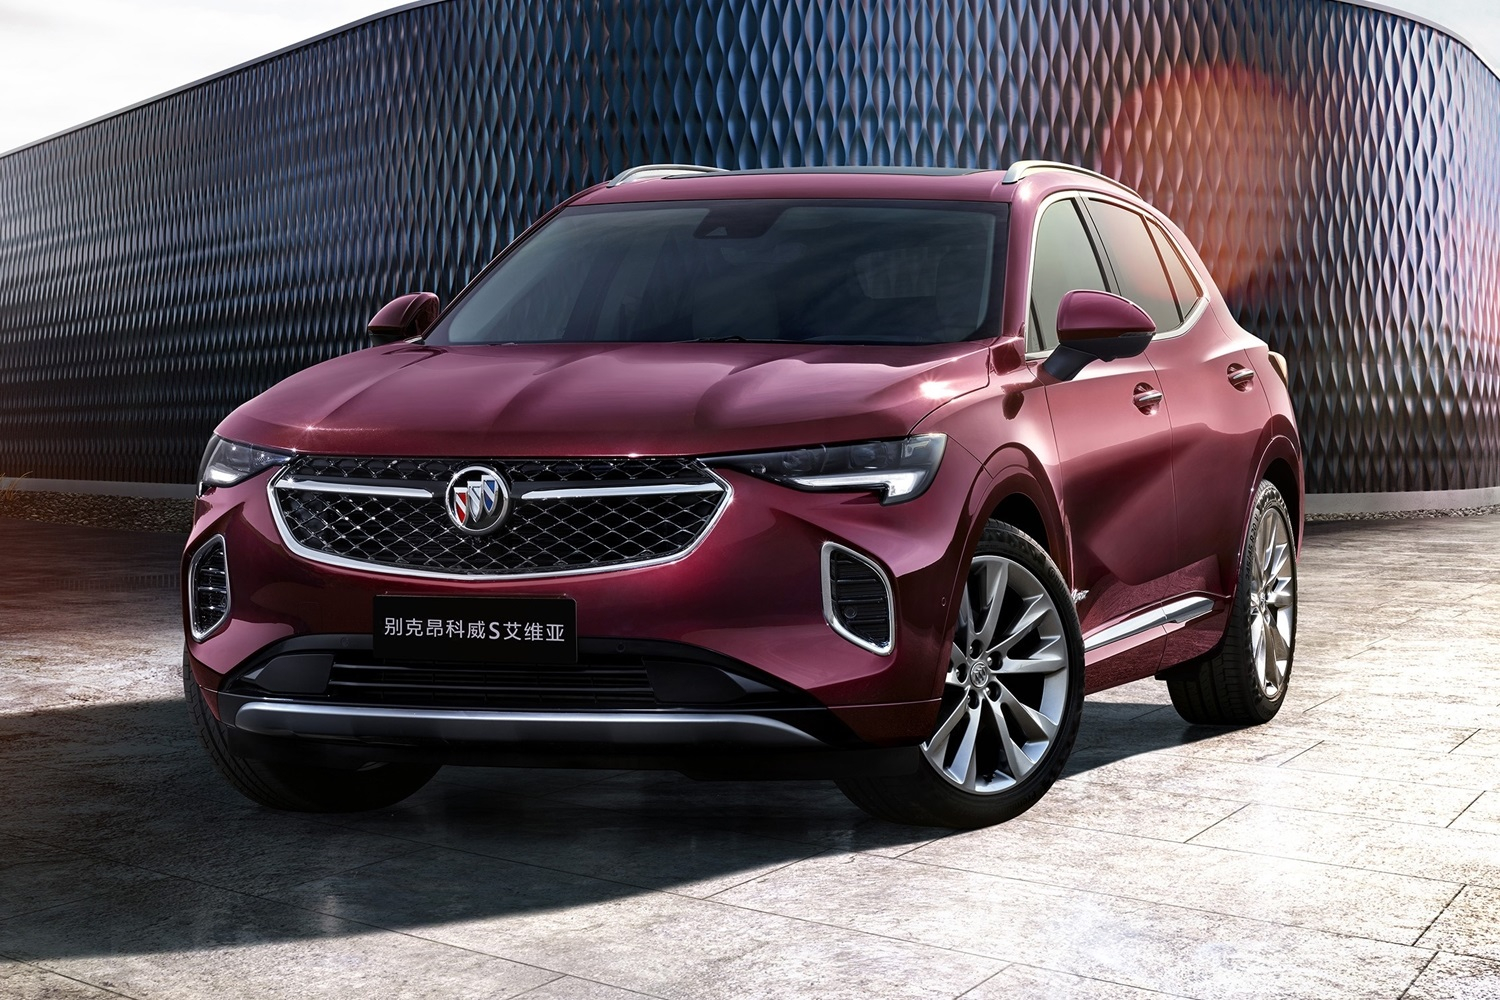 Range-Topping 2021 Buick Envision Avenir Revealed | Gm Authority 2021 Buick Encore Accessories, All Wheel Drive, Build